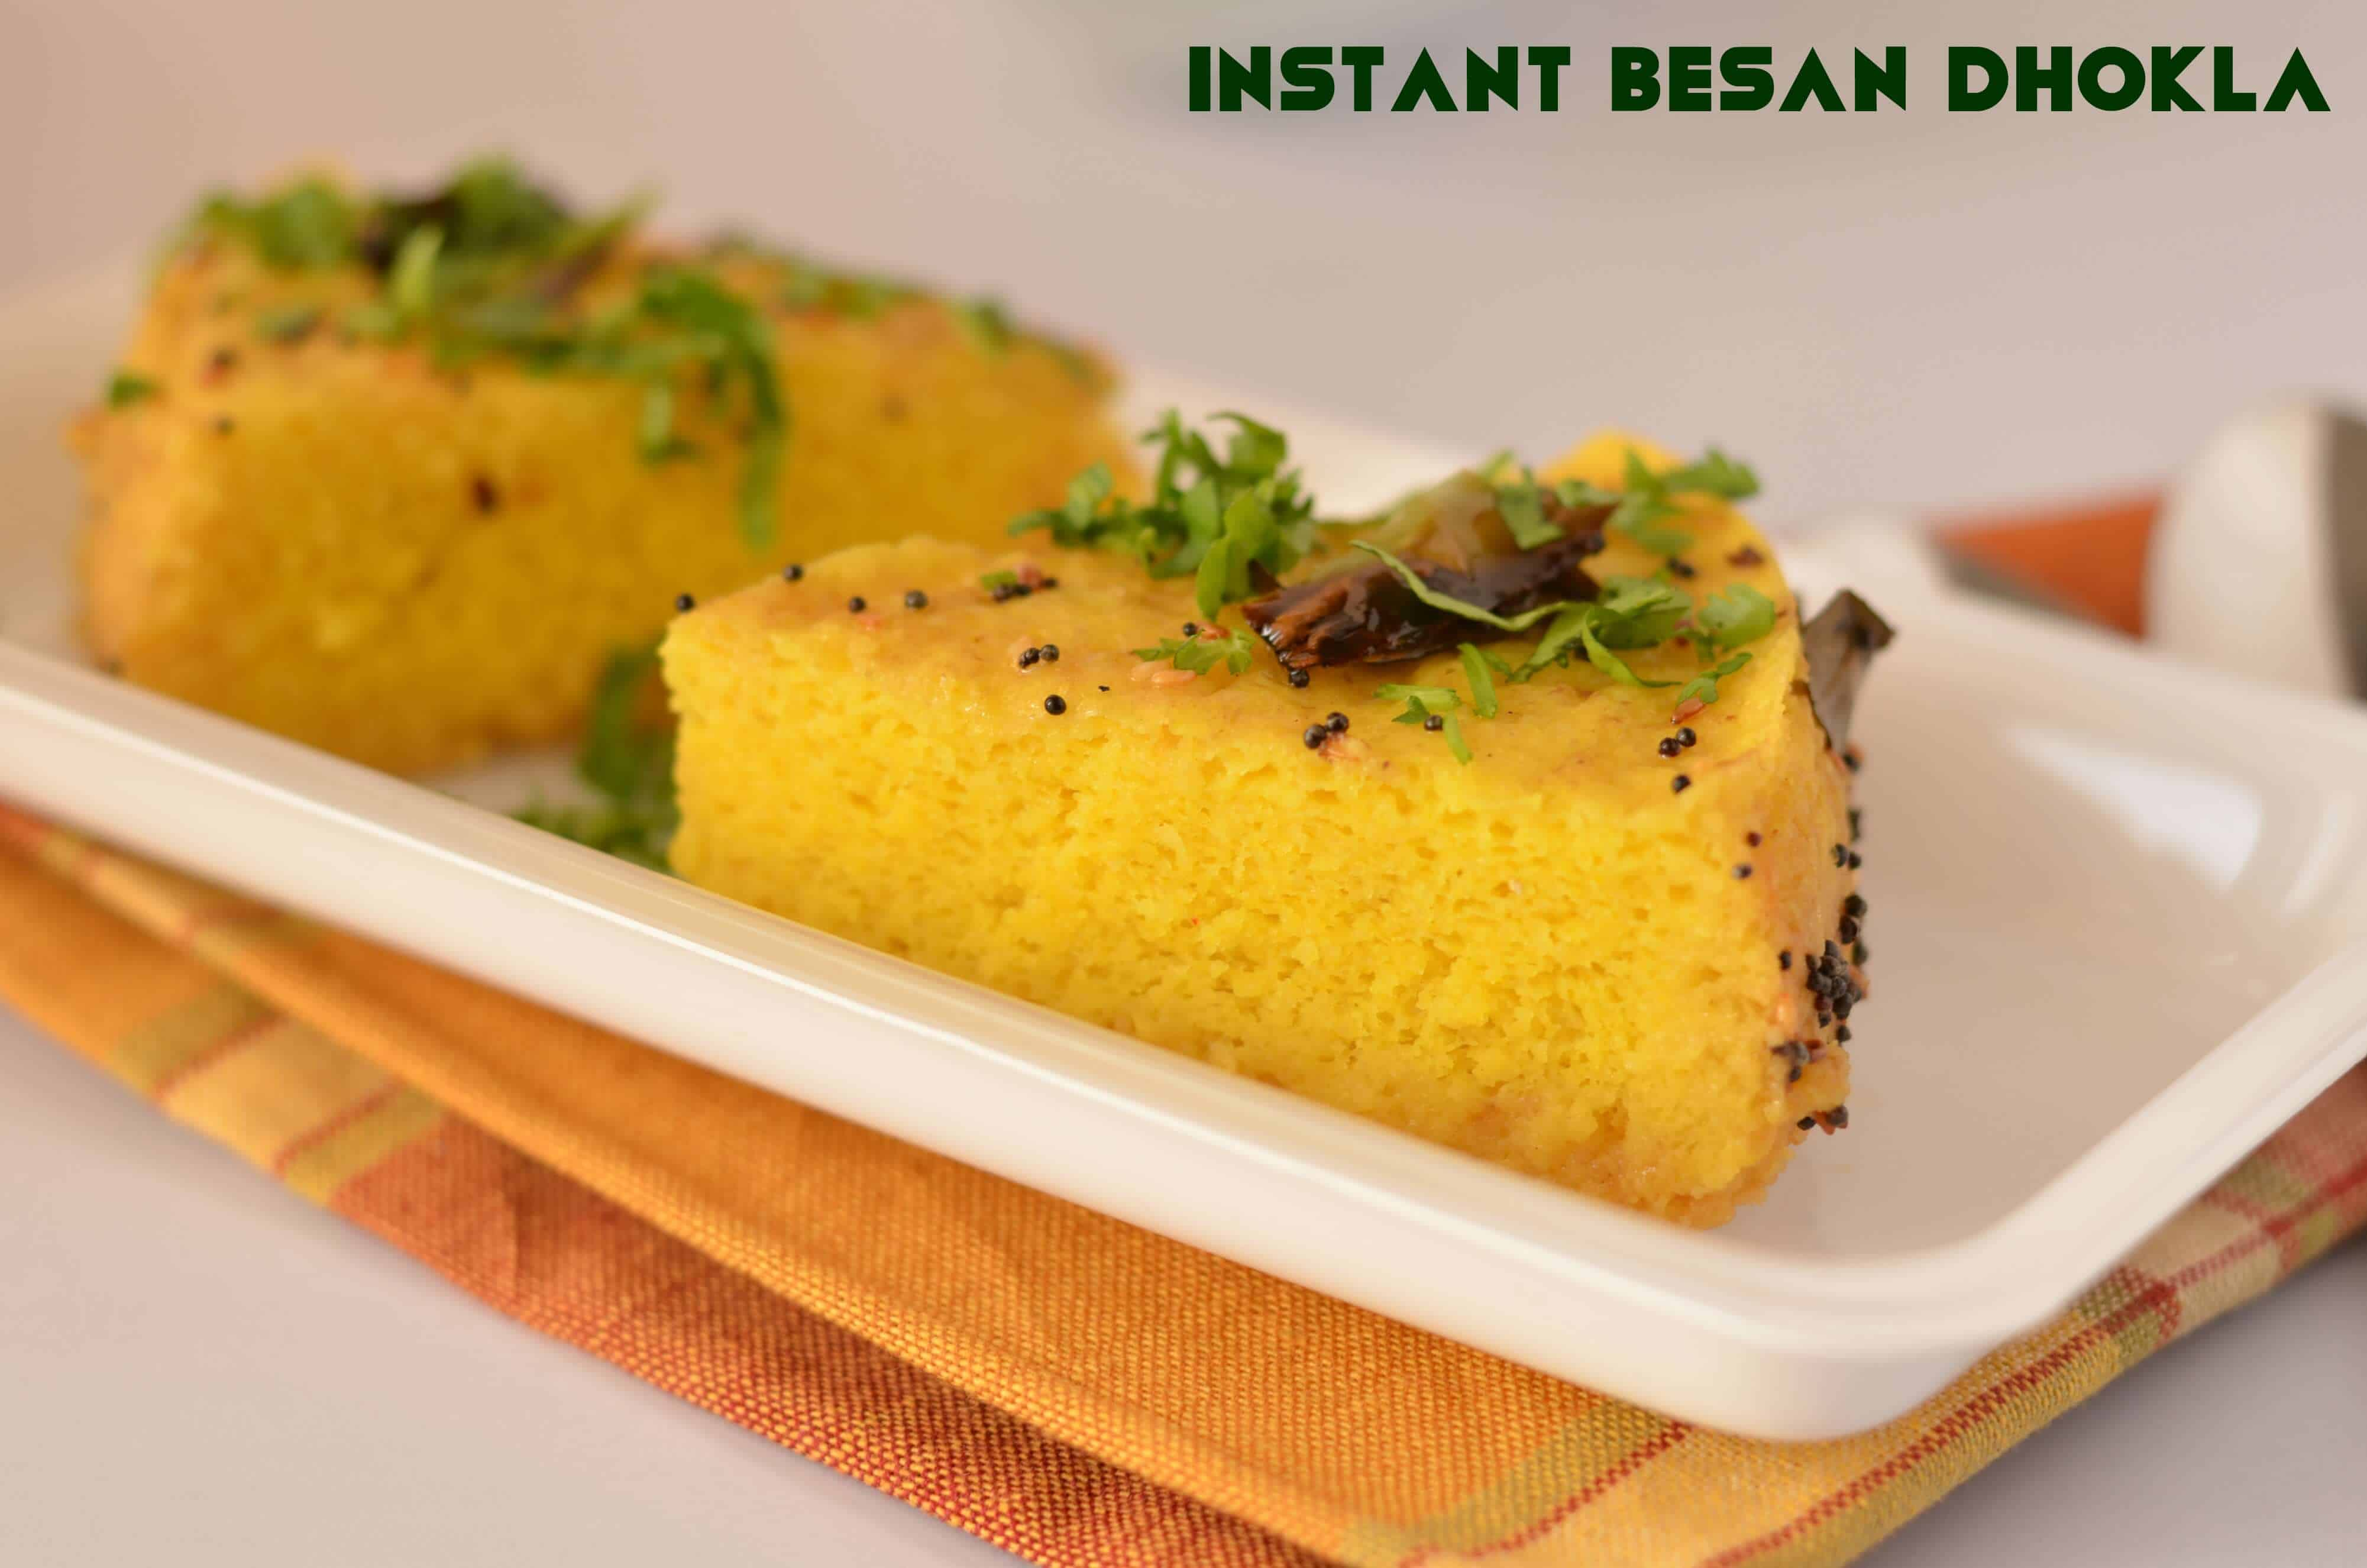 Instant Besan Dhokla